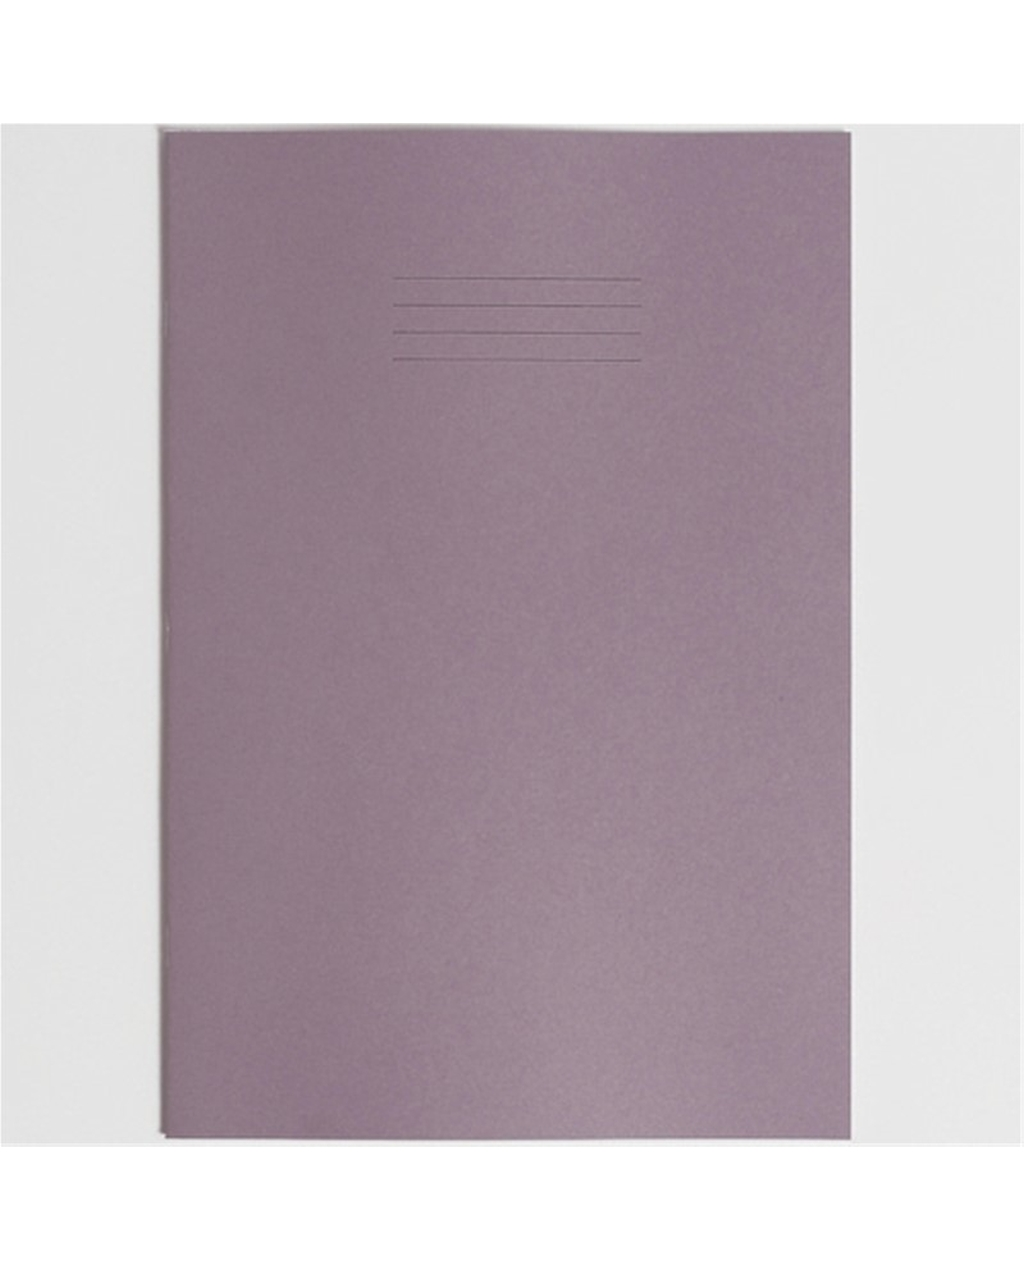 Exercise Book A4+ size (330 x 250mm) Purple Cover 8mm Ruled 40 Pages